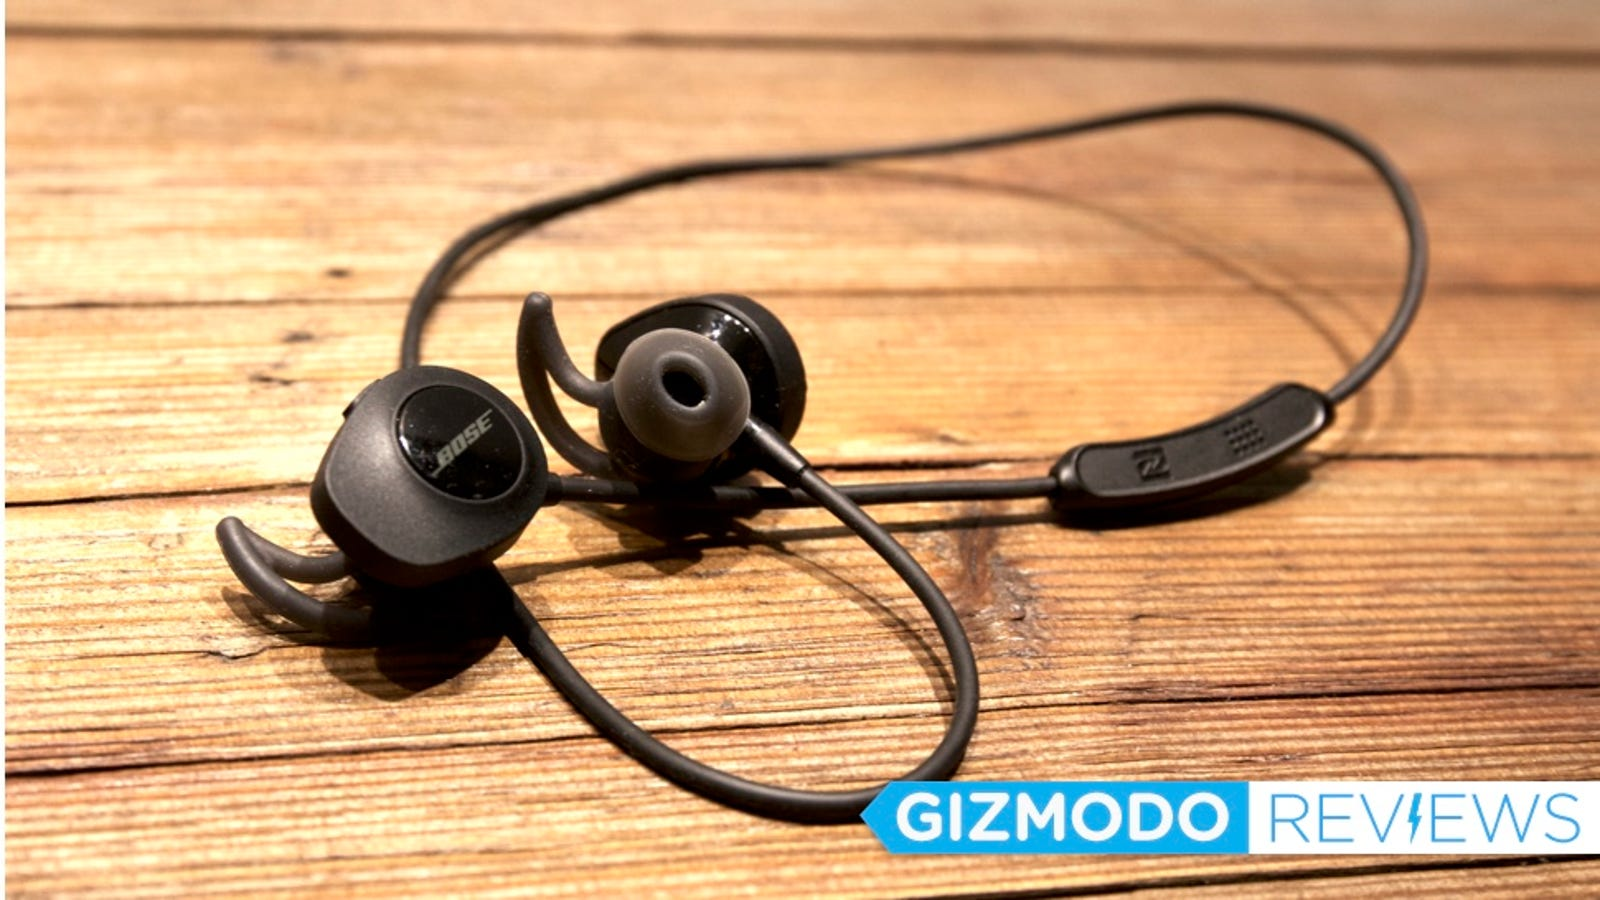 lightweight wireless headphones with mic - Bose Wireless SoundSport Earbuds Are Great for the Gym But Not Much Else